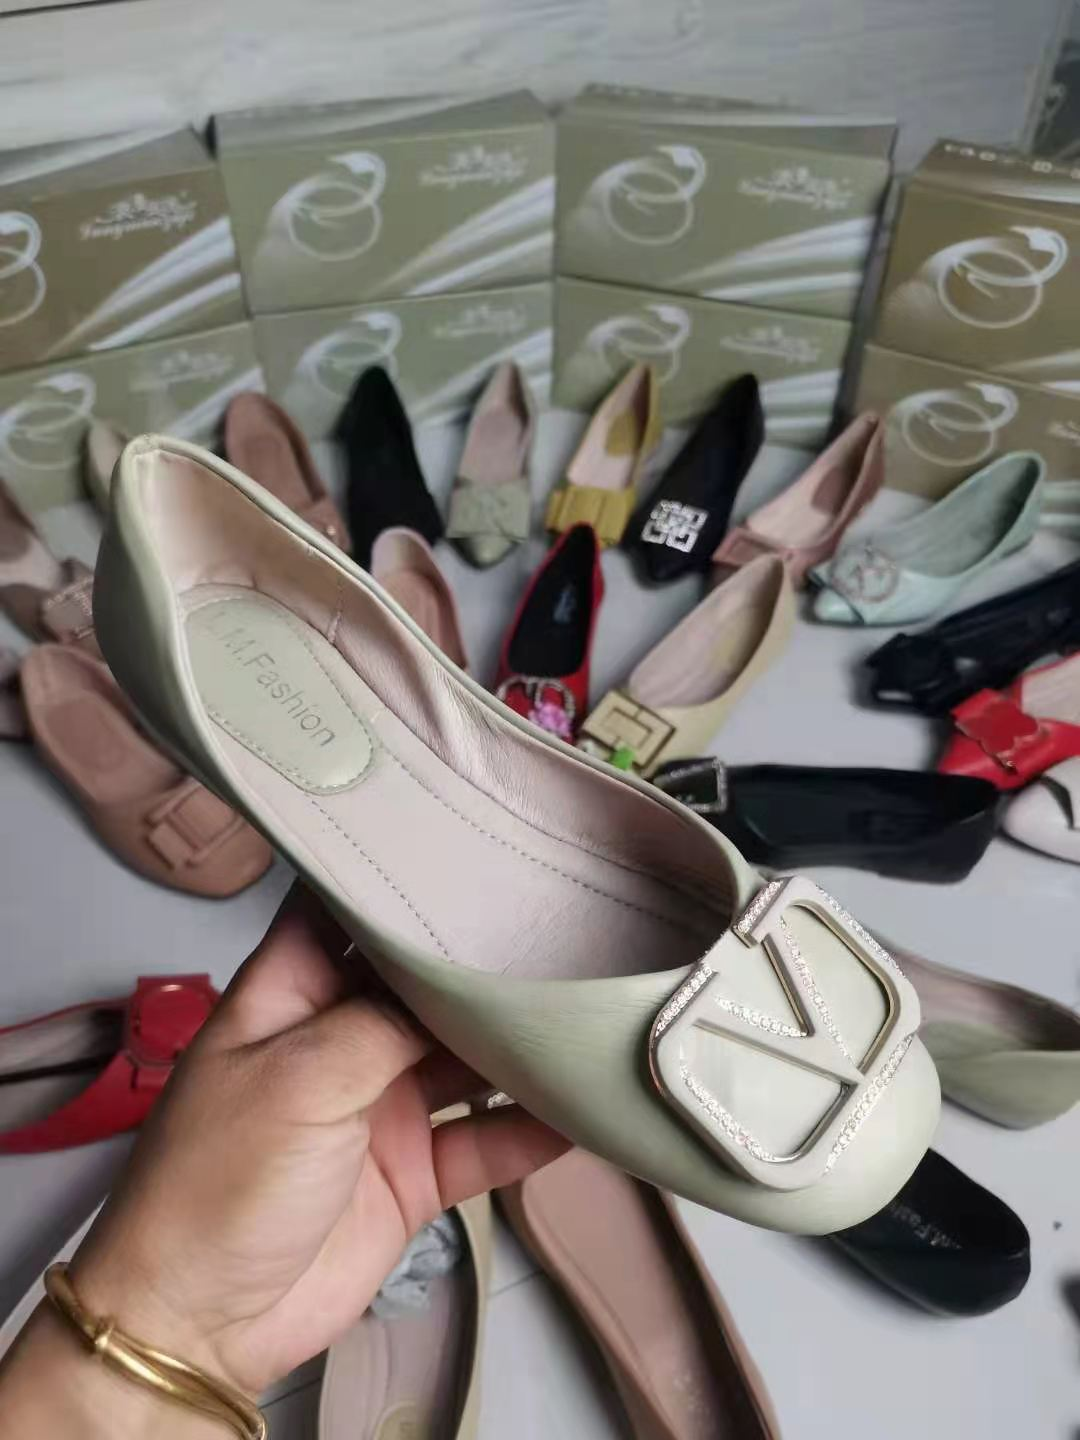 2021 New women shoes design mix style flat best selling top quality fashionable and popular casual soft walking ladies shoes